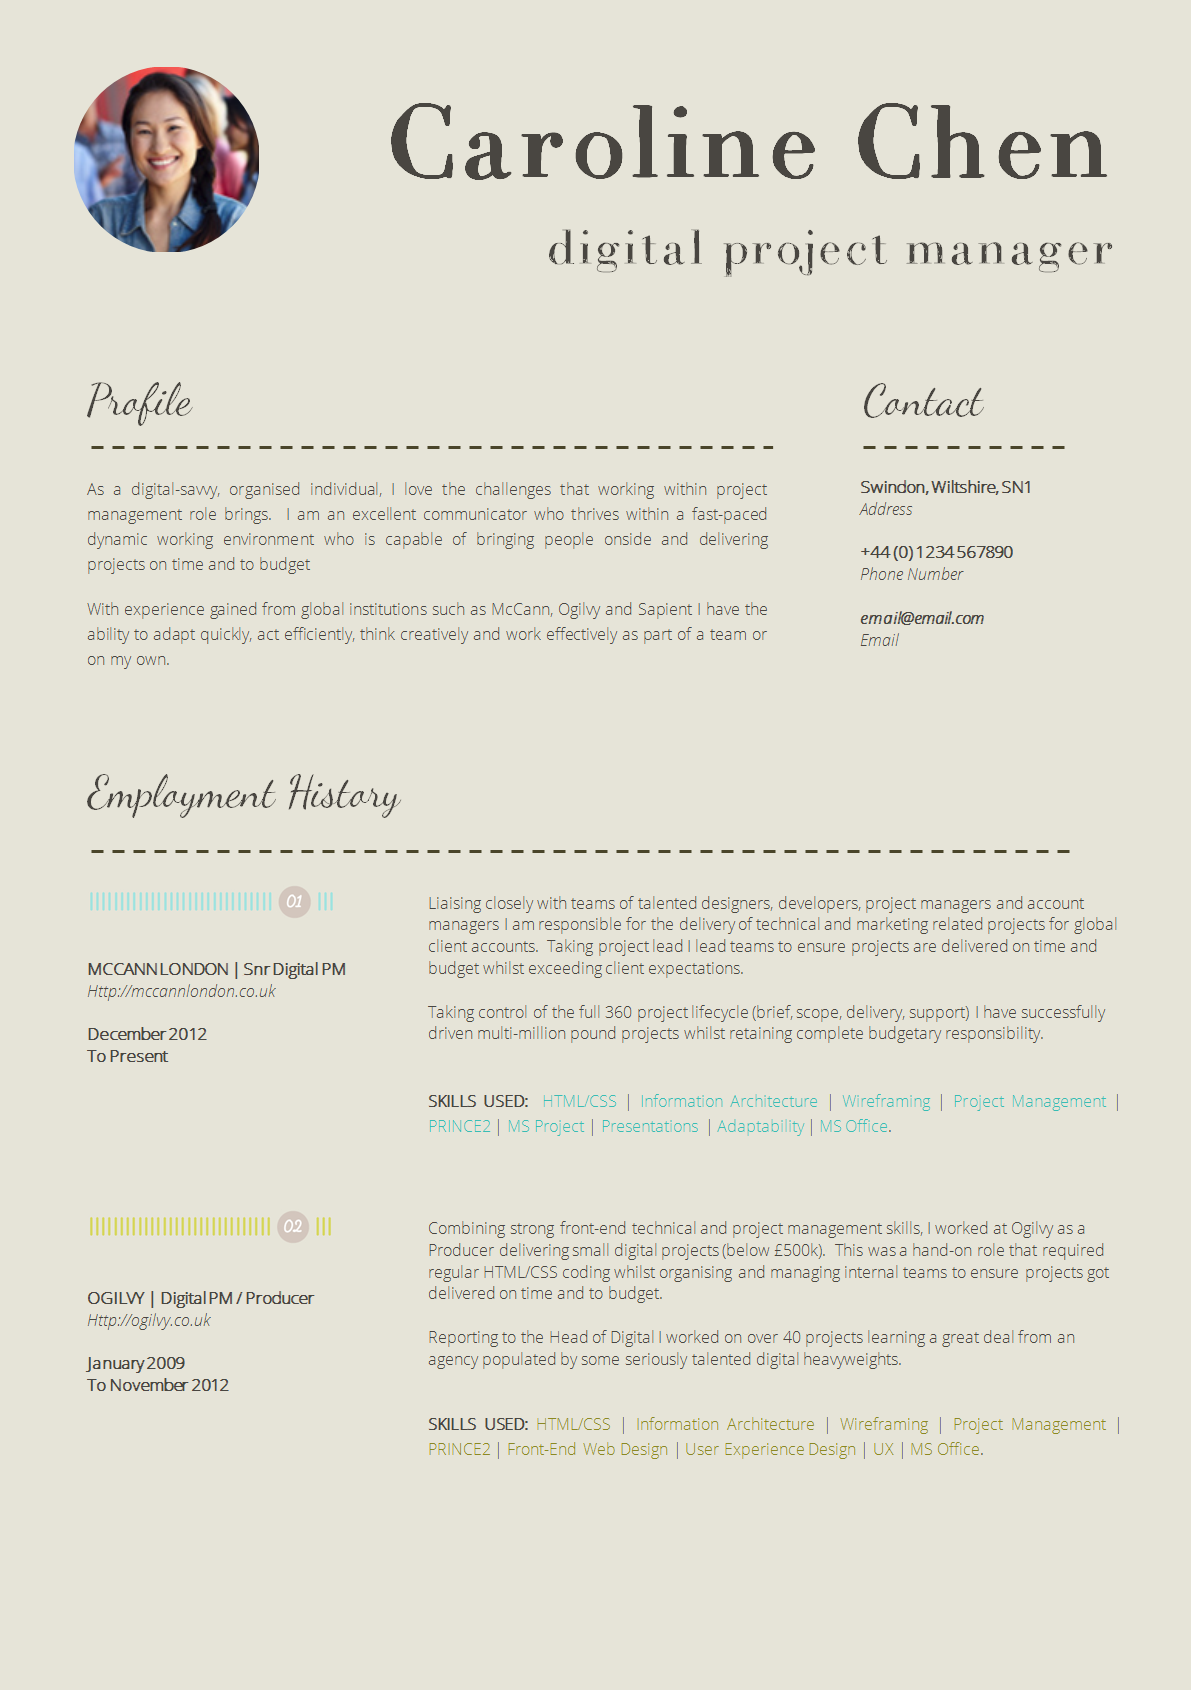 template of professional cv - Sample Professional Resume Template